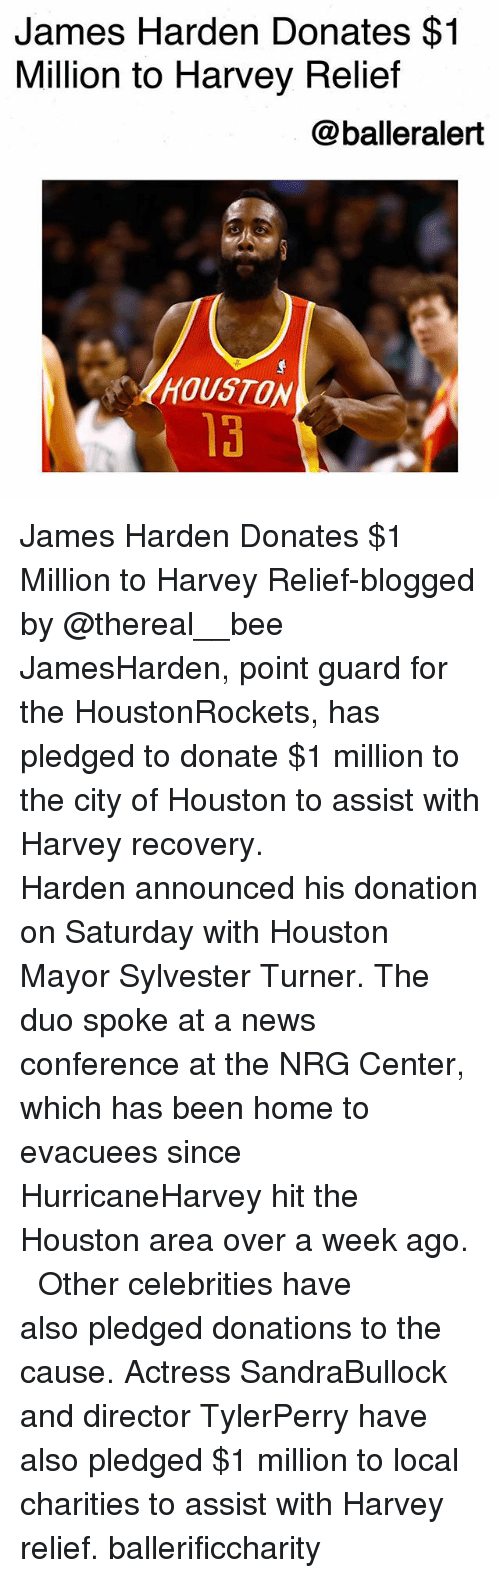 homed: James Harden Donates $1  Million to Harvey Relief  @balleralert  HOUSTON  13 James Harden Donates $1 Million to Harvey Relief-blogged by @thereal__bee ⠀⠀⠀⠀⠀⠀⠀⠀⠀ ⠀⠀ JamesHarden, point guard for the HoustonRockets, has pledged to donate $1 million to the city of Houston to assist with Harvey recovery. ⠀⠀⠀⠀⠀⠀⠀⠀⠀ ⠀⠀ Harden announced his donation on Saturday with Houston Mayor Sylvester Turner. The duo spoke at a news conference at the NRG Center, which has been home to evacuees since HurricaneHarvey hit the Houston area over a week ago. ⠀⠀⠀⠀⠀⠀⠀⠀⠀ ⠀⠀ Other celebrities have also pledged donations to the cause. Actress SandraBullock and director TylerPerry have also pledged $1 million to local charities to assist with Harvey relief. ballerificcharity